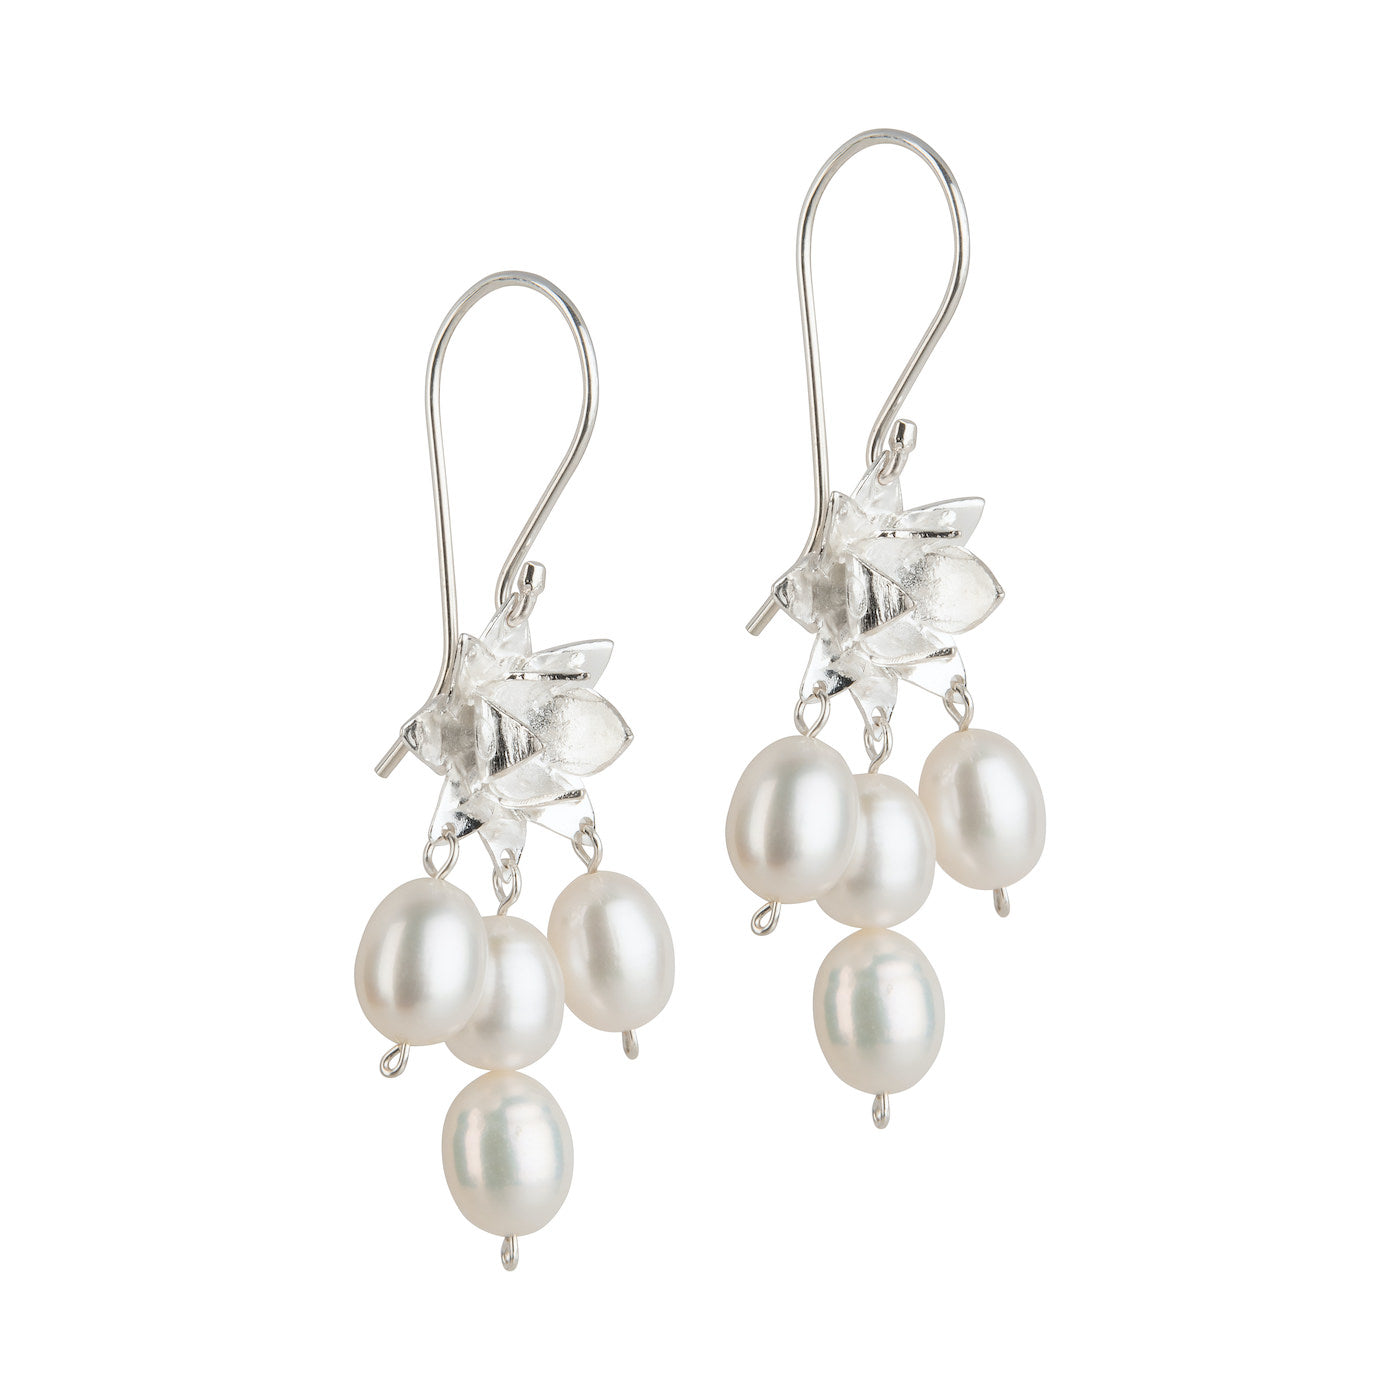 LOTUS DAWN PEARL EARRINGS - SILVER